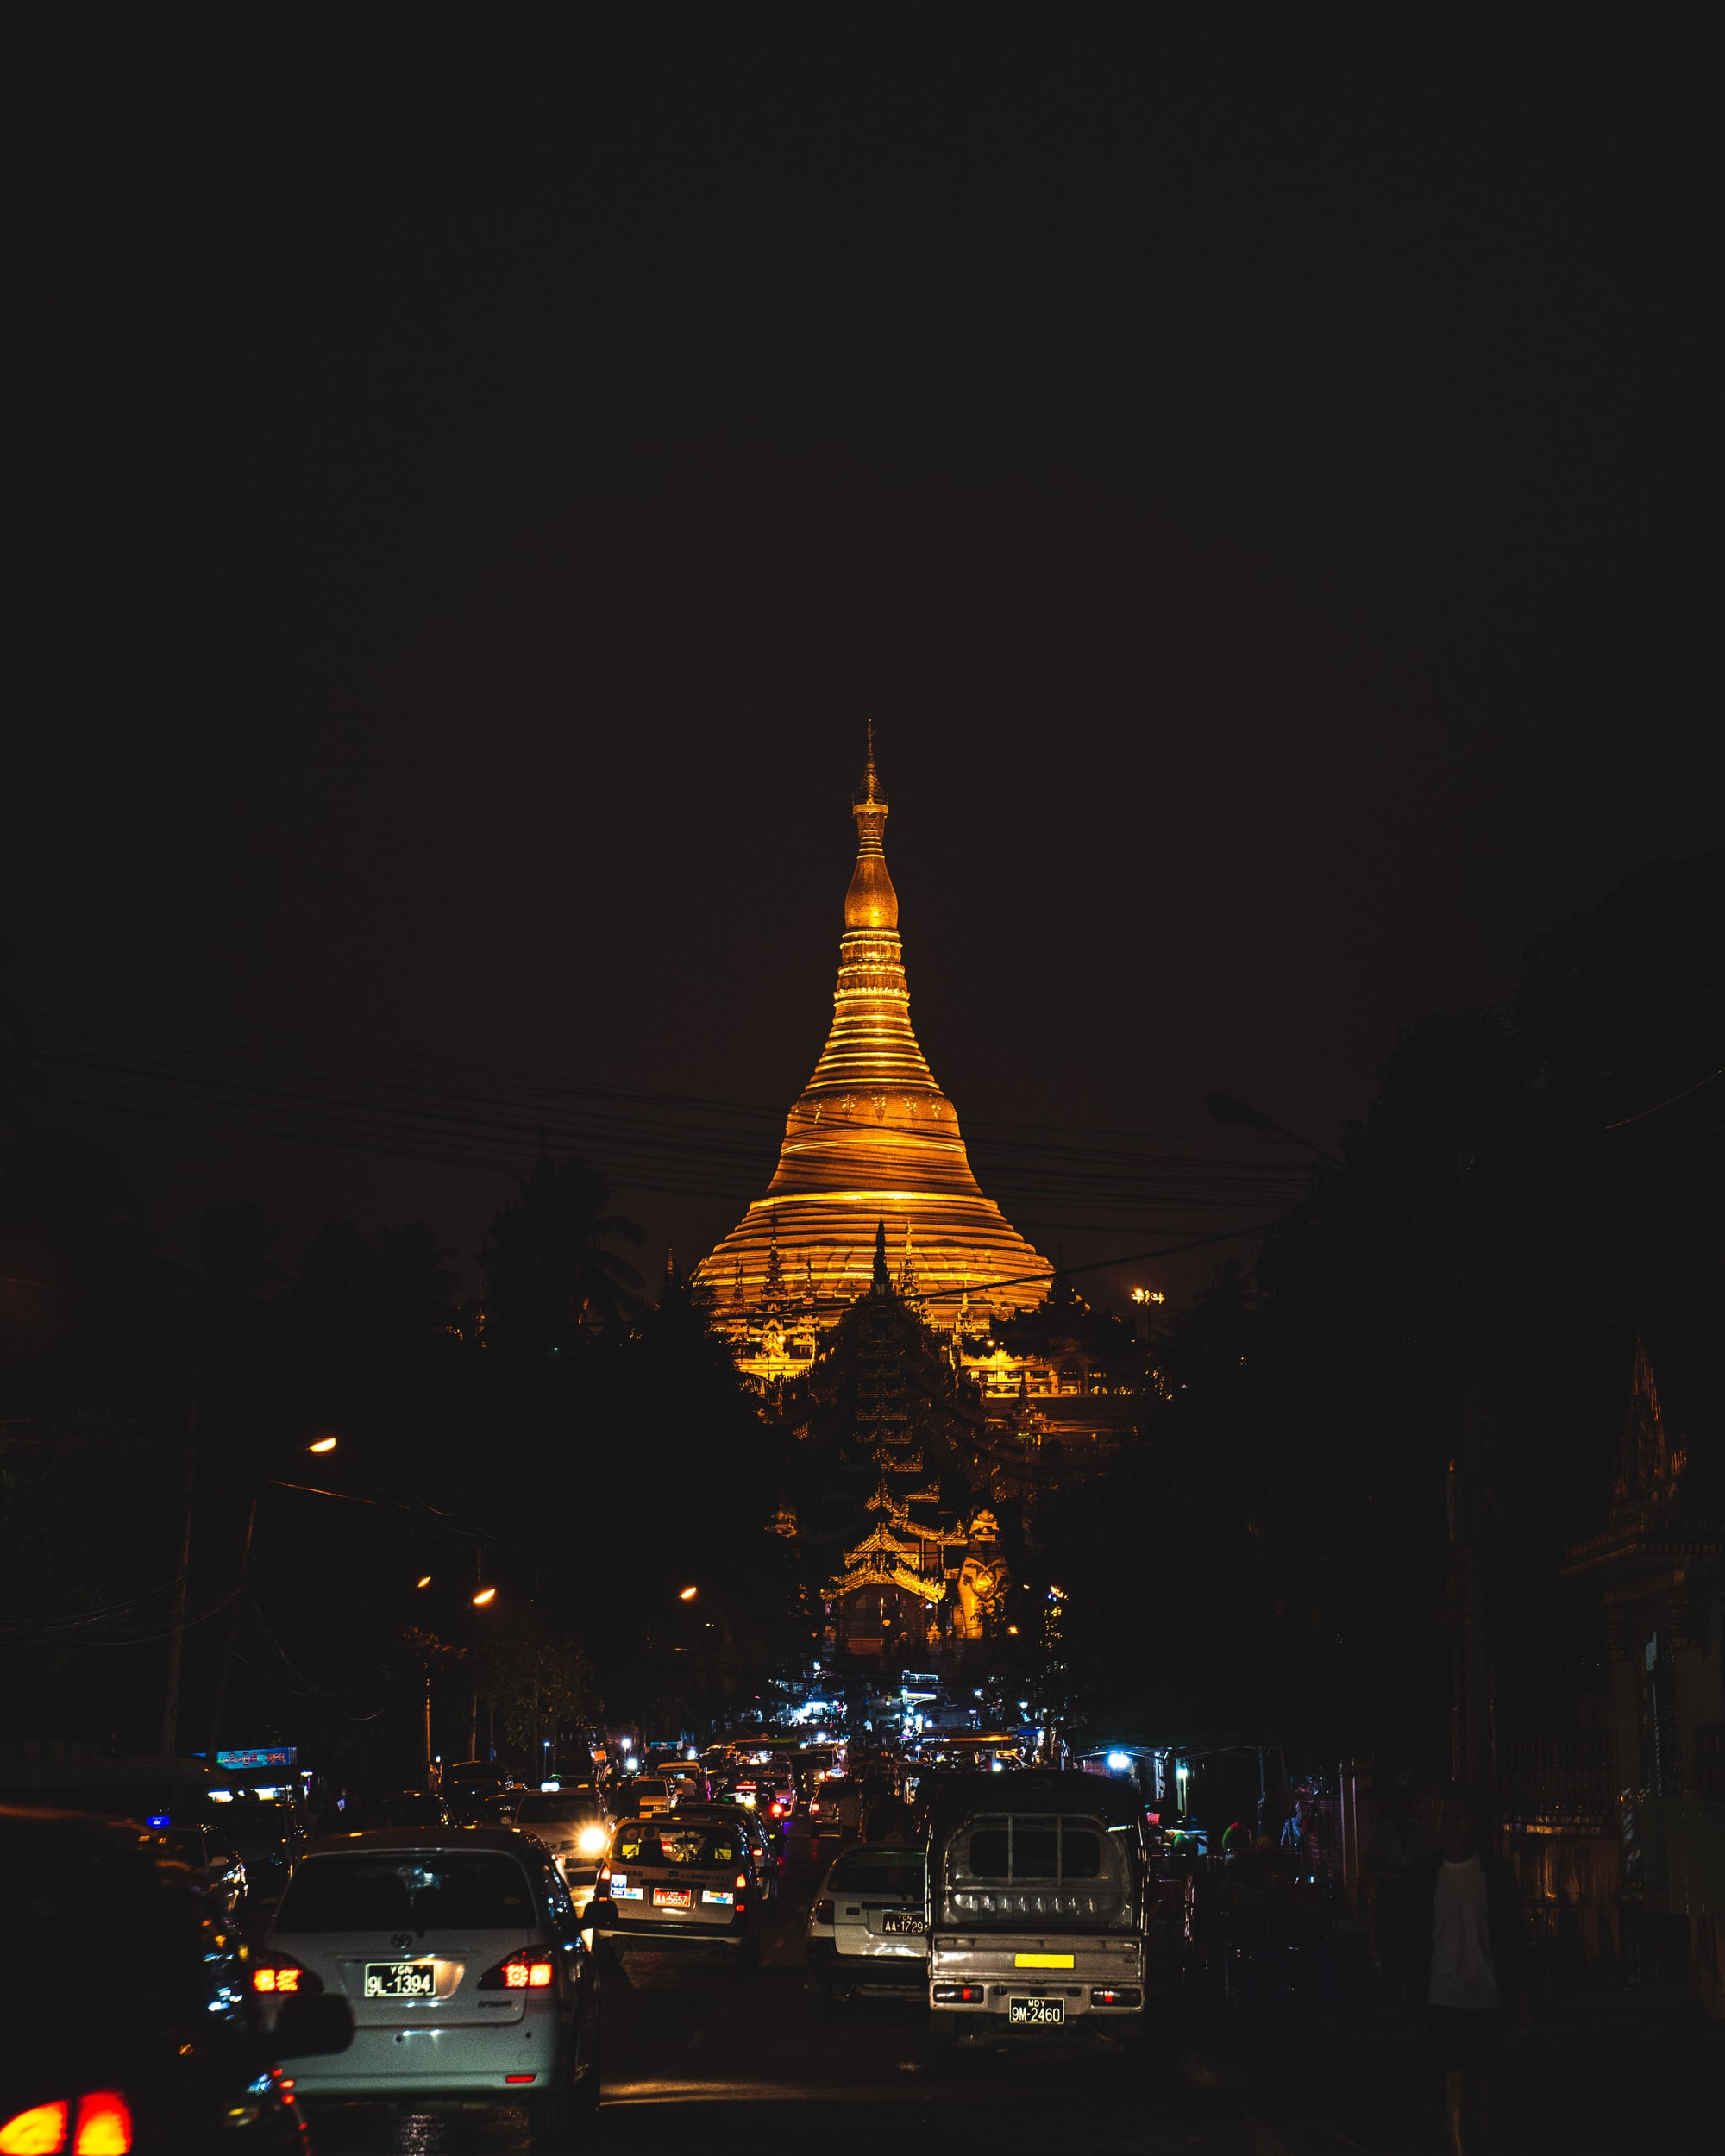 Walking towards the Schwedagon Pagoda in Yangon, Myanmar. Instagram: @Tatonomusic